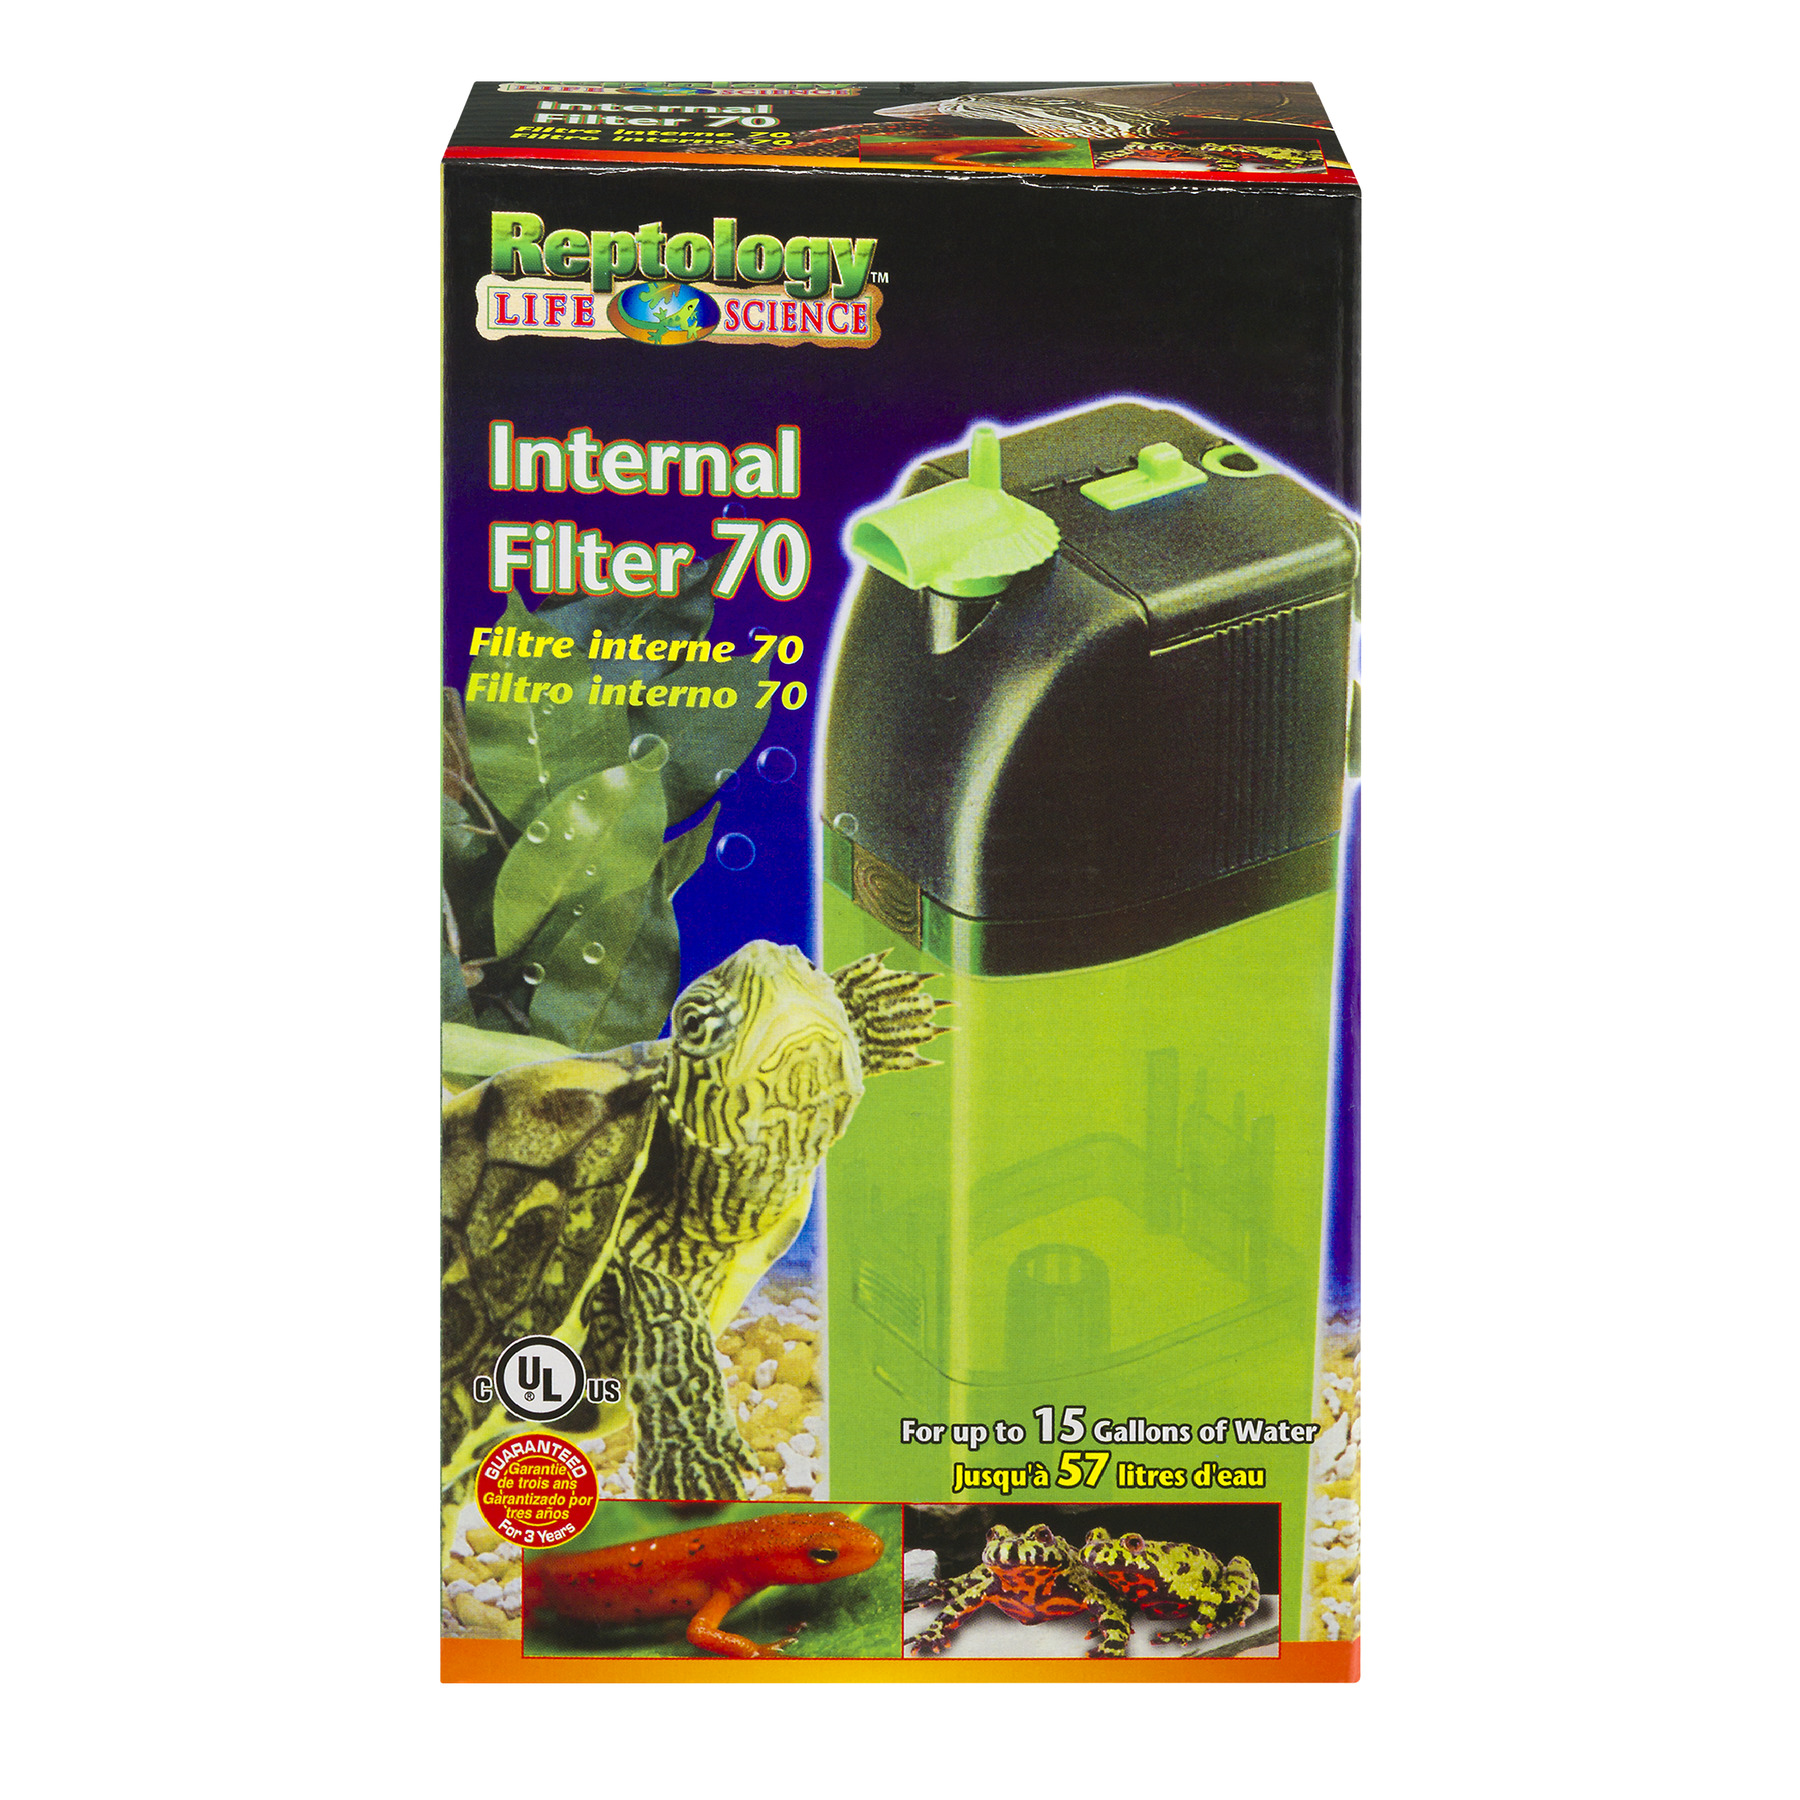 Penn-Plax Reptology Life Science Internal Filter 70, 1.0 CT